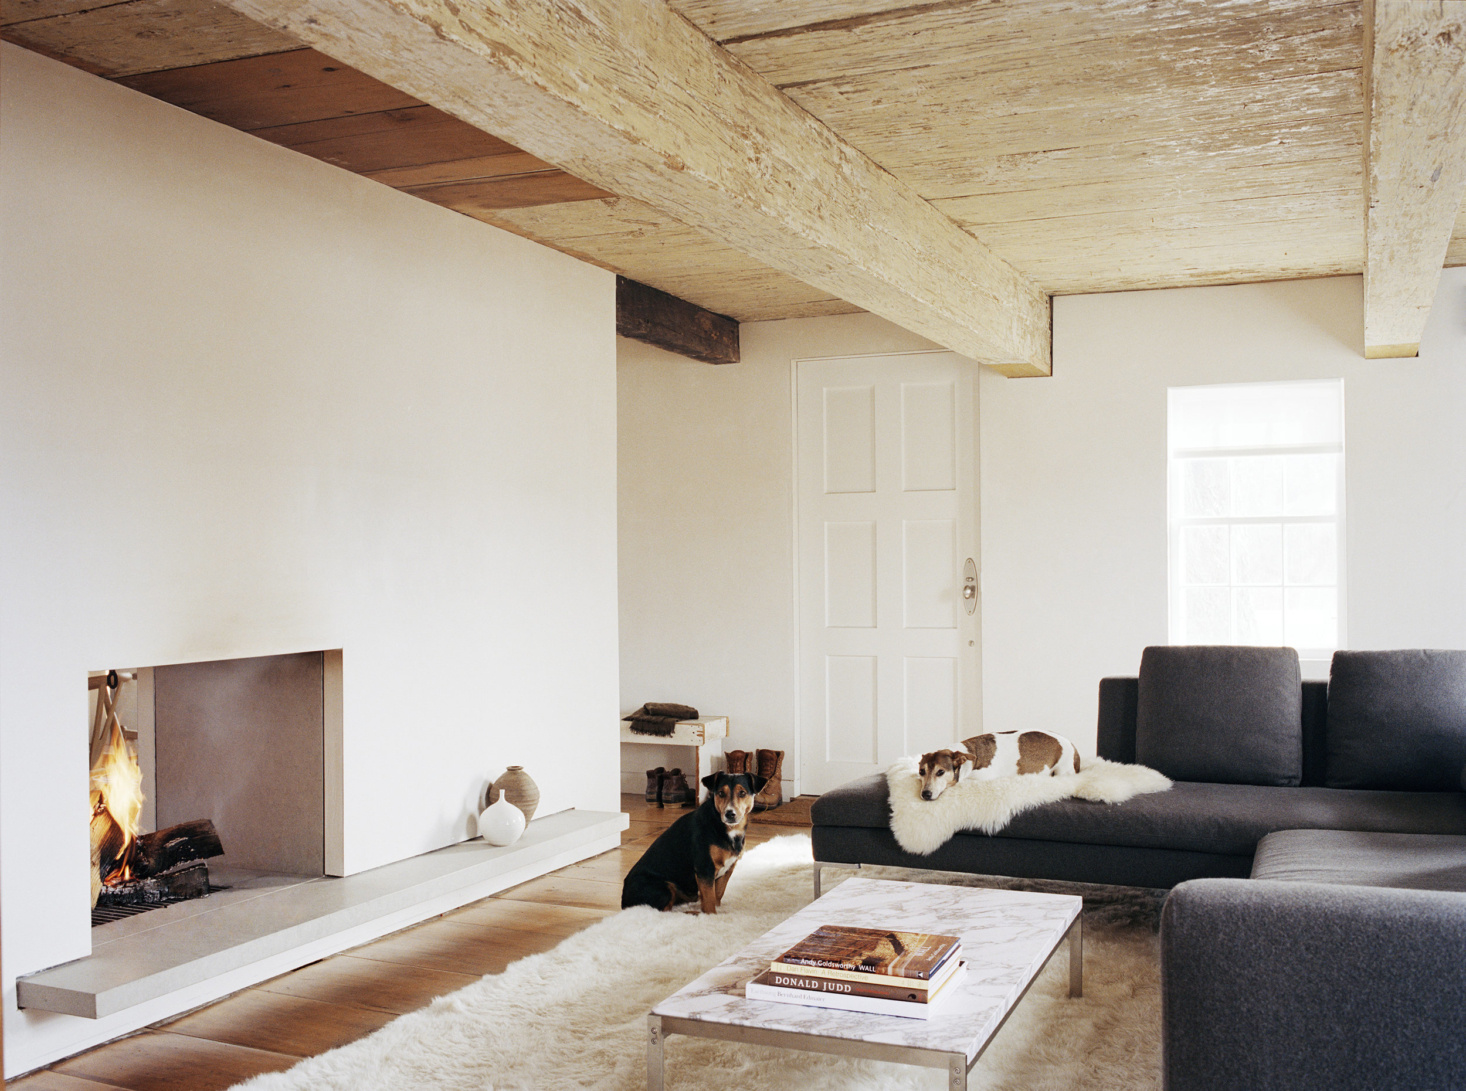 Warm Minimalism: 10 of Our Favorite Contemporary Fireplaces from the Remodelista Archives